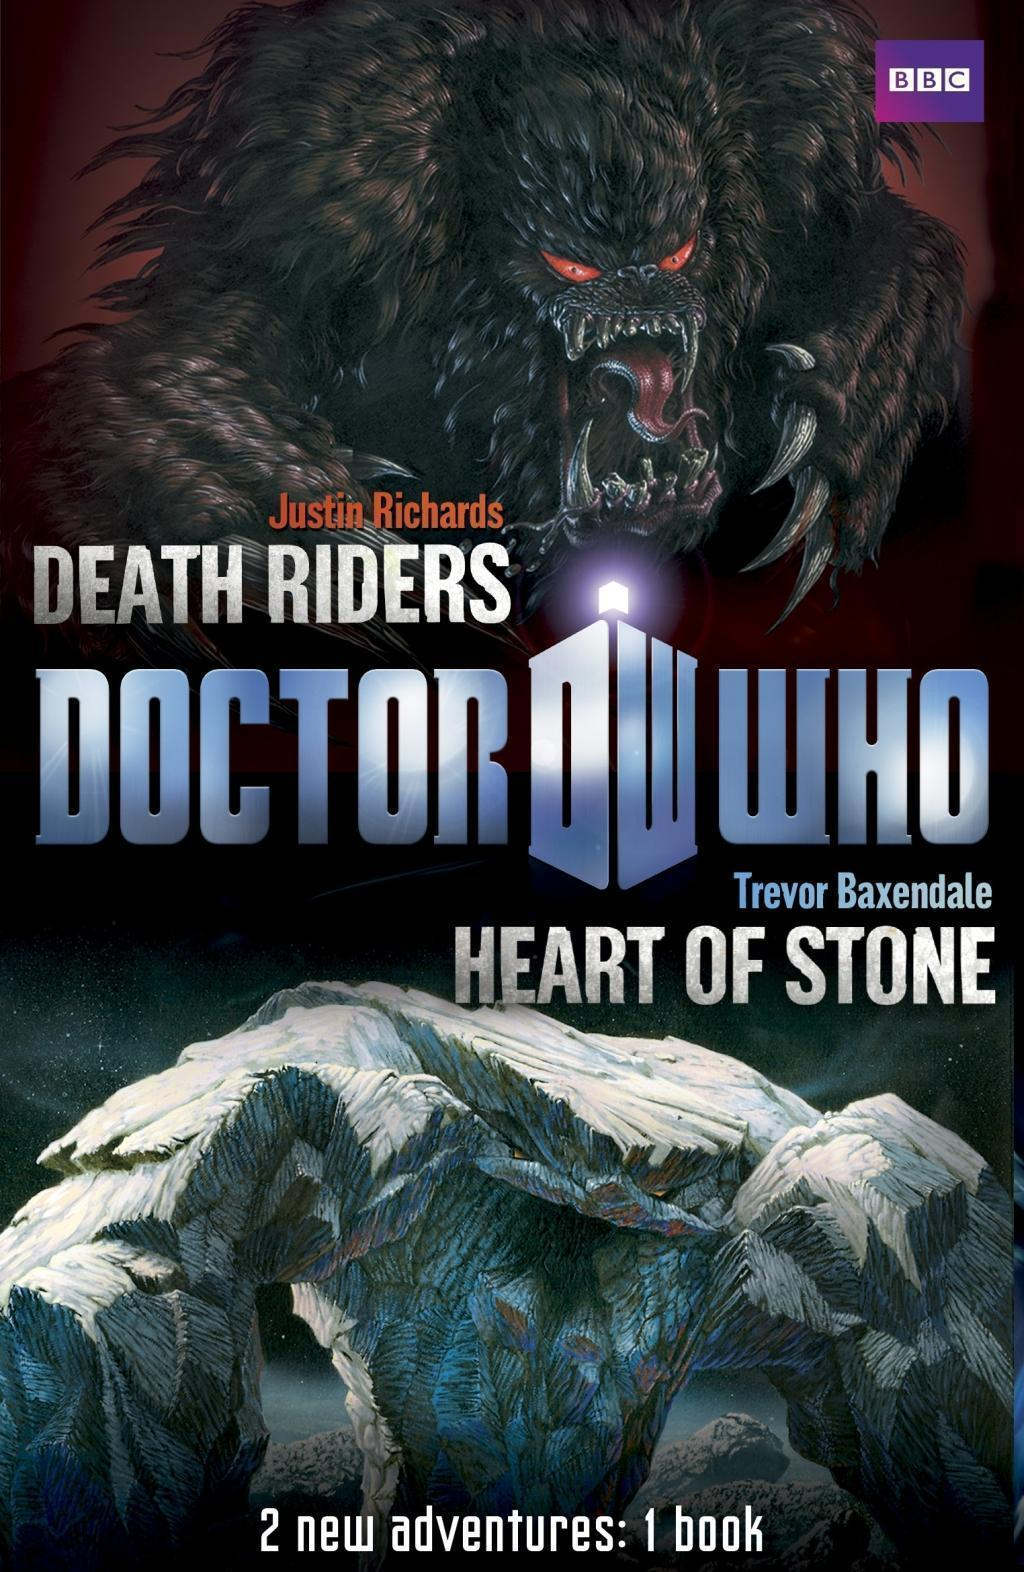 Book 1 - Doctor Who: Heart of Stone / Death Riders